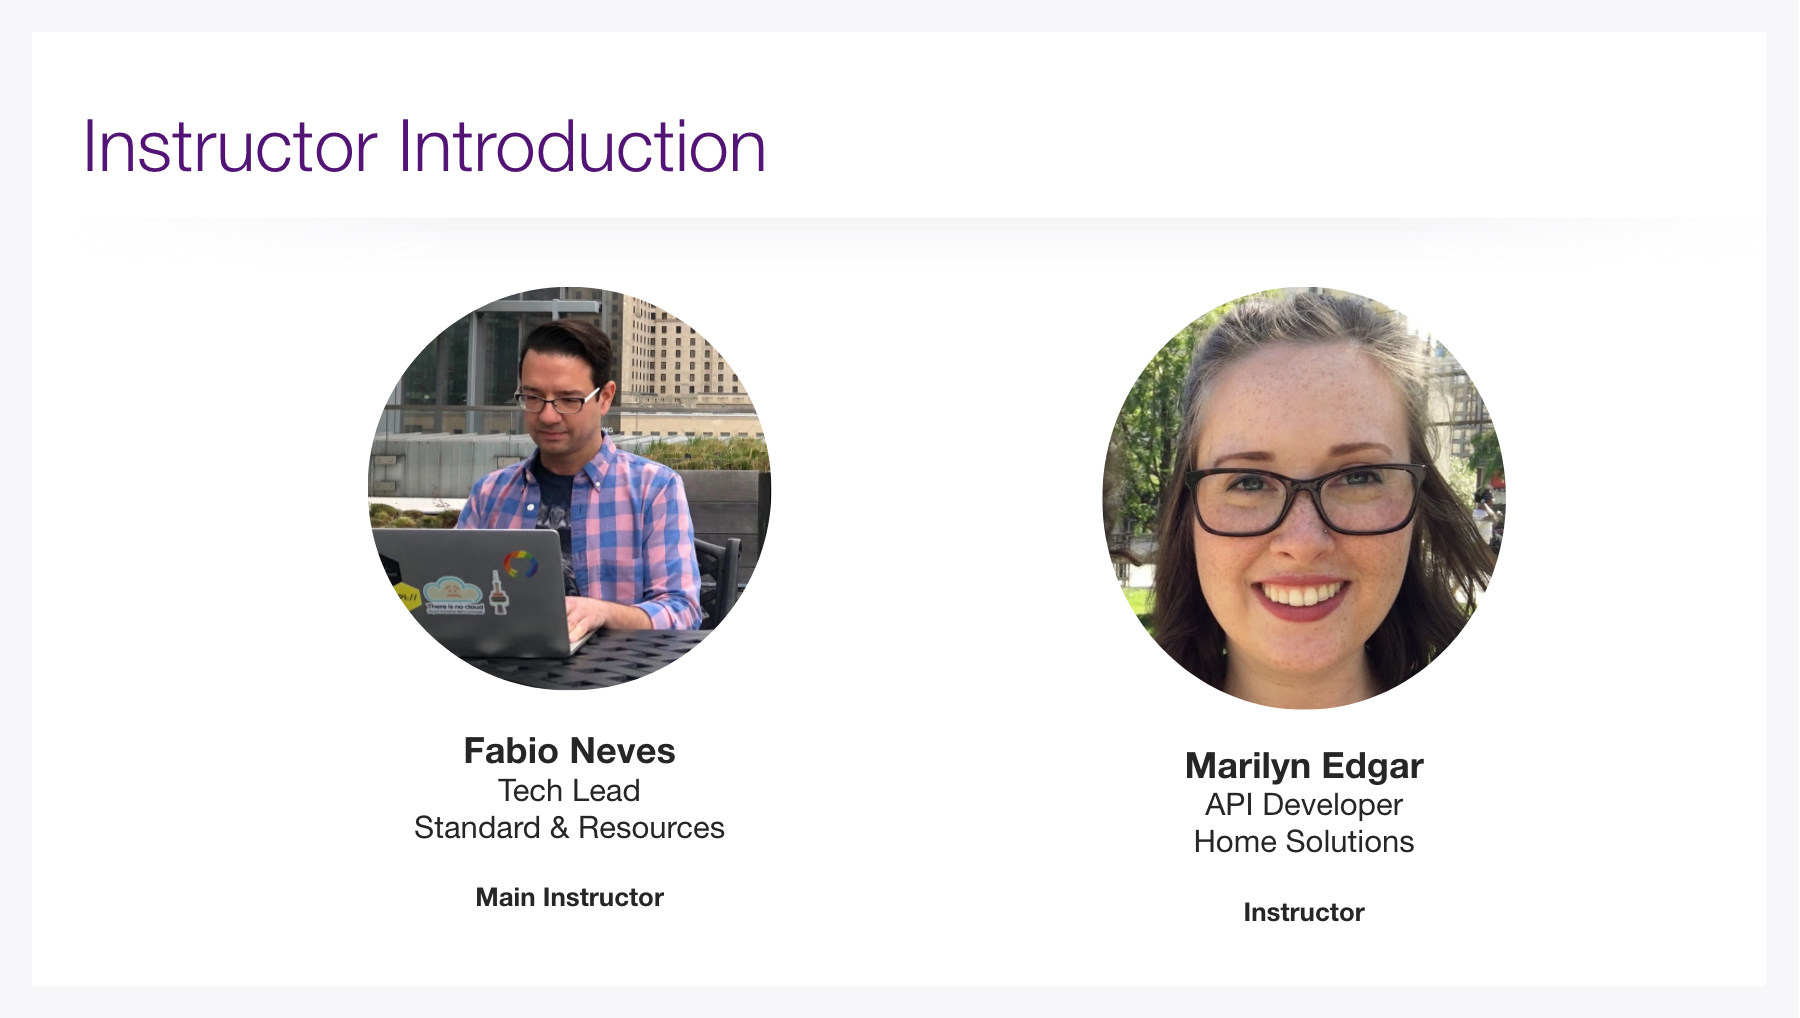 Instructors: Fabio Neves and Marilyn Edgar